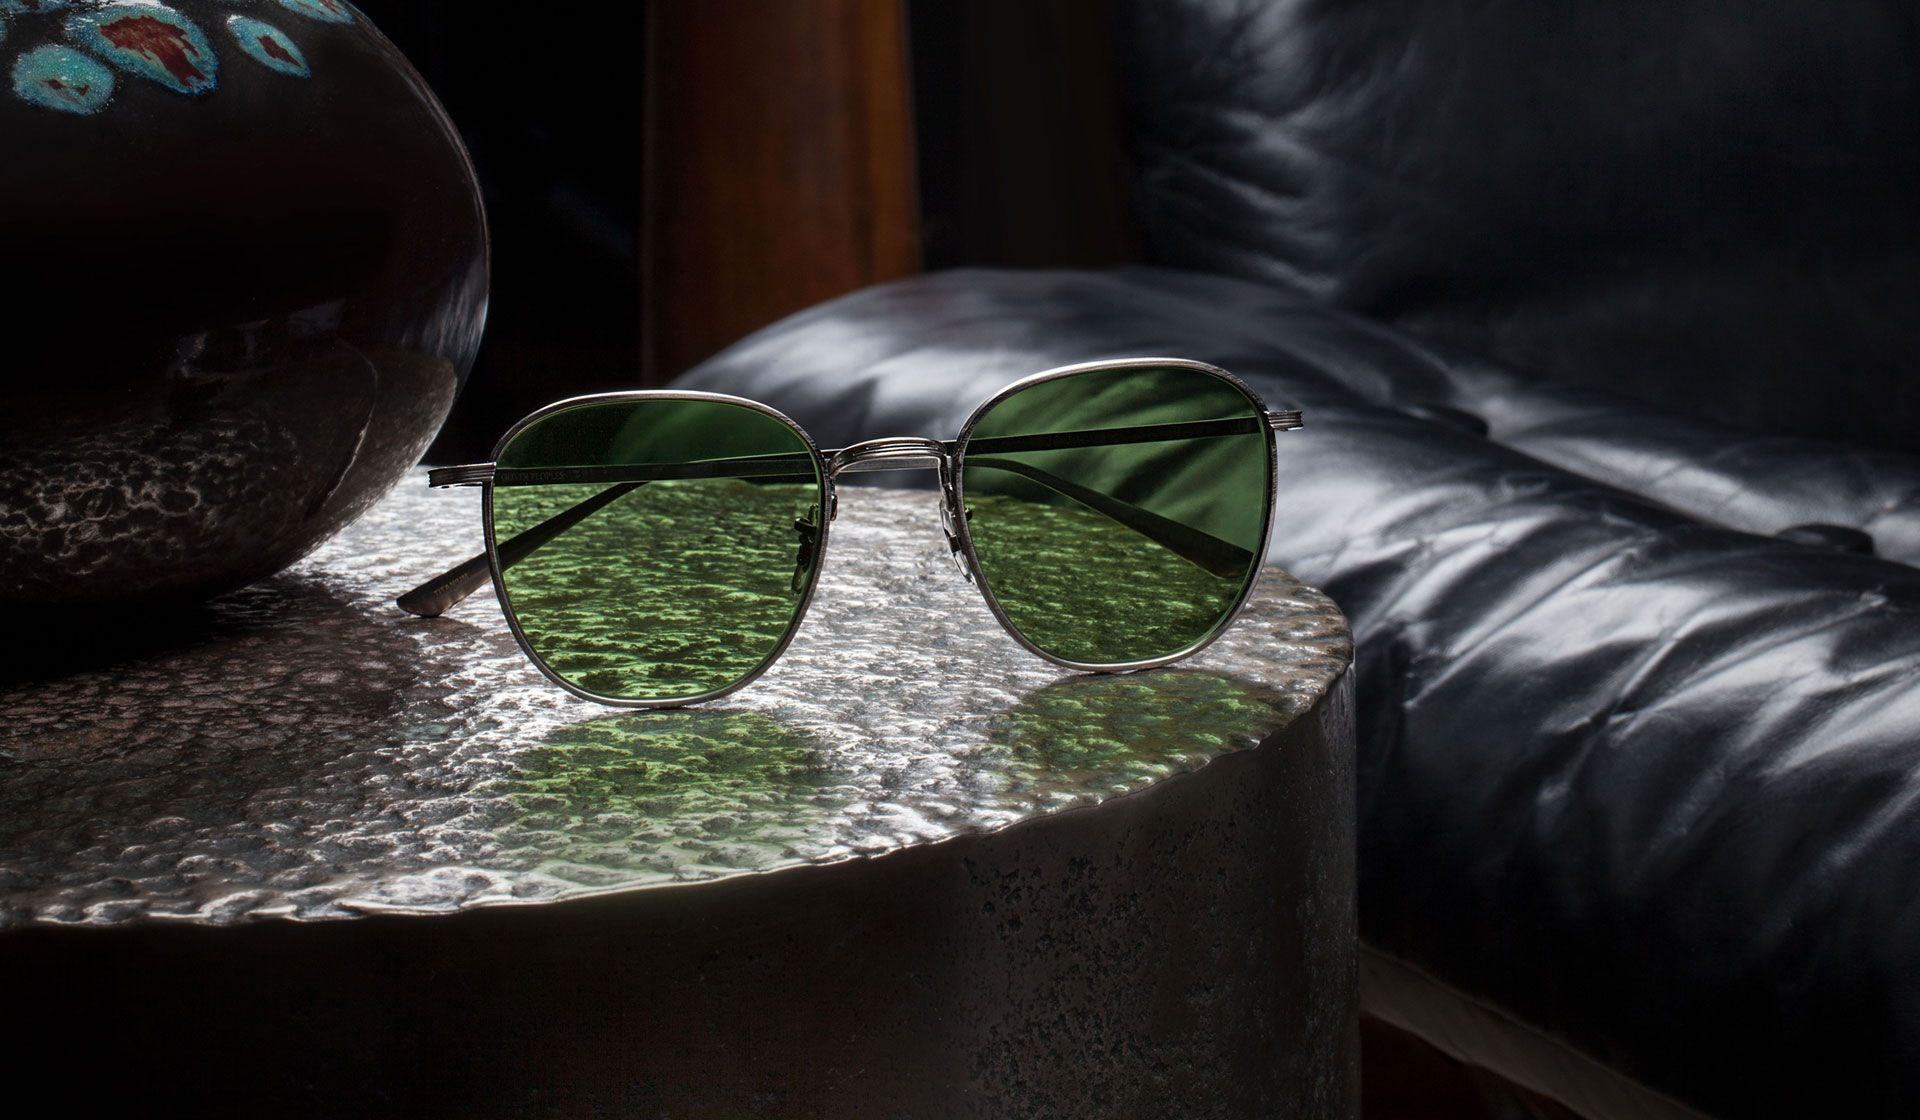 eac18e9d84 Oliver Peoples and The Row partner to create a new collaboration of  sunglasses. The project was born with the idea of marrying two brands with  similar ...